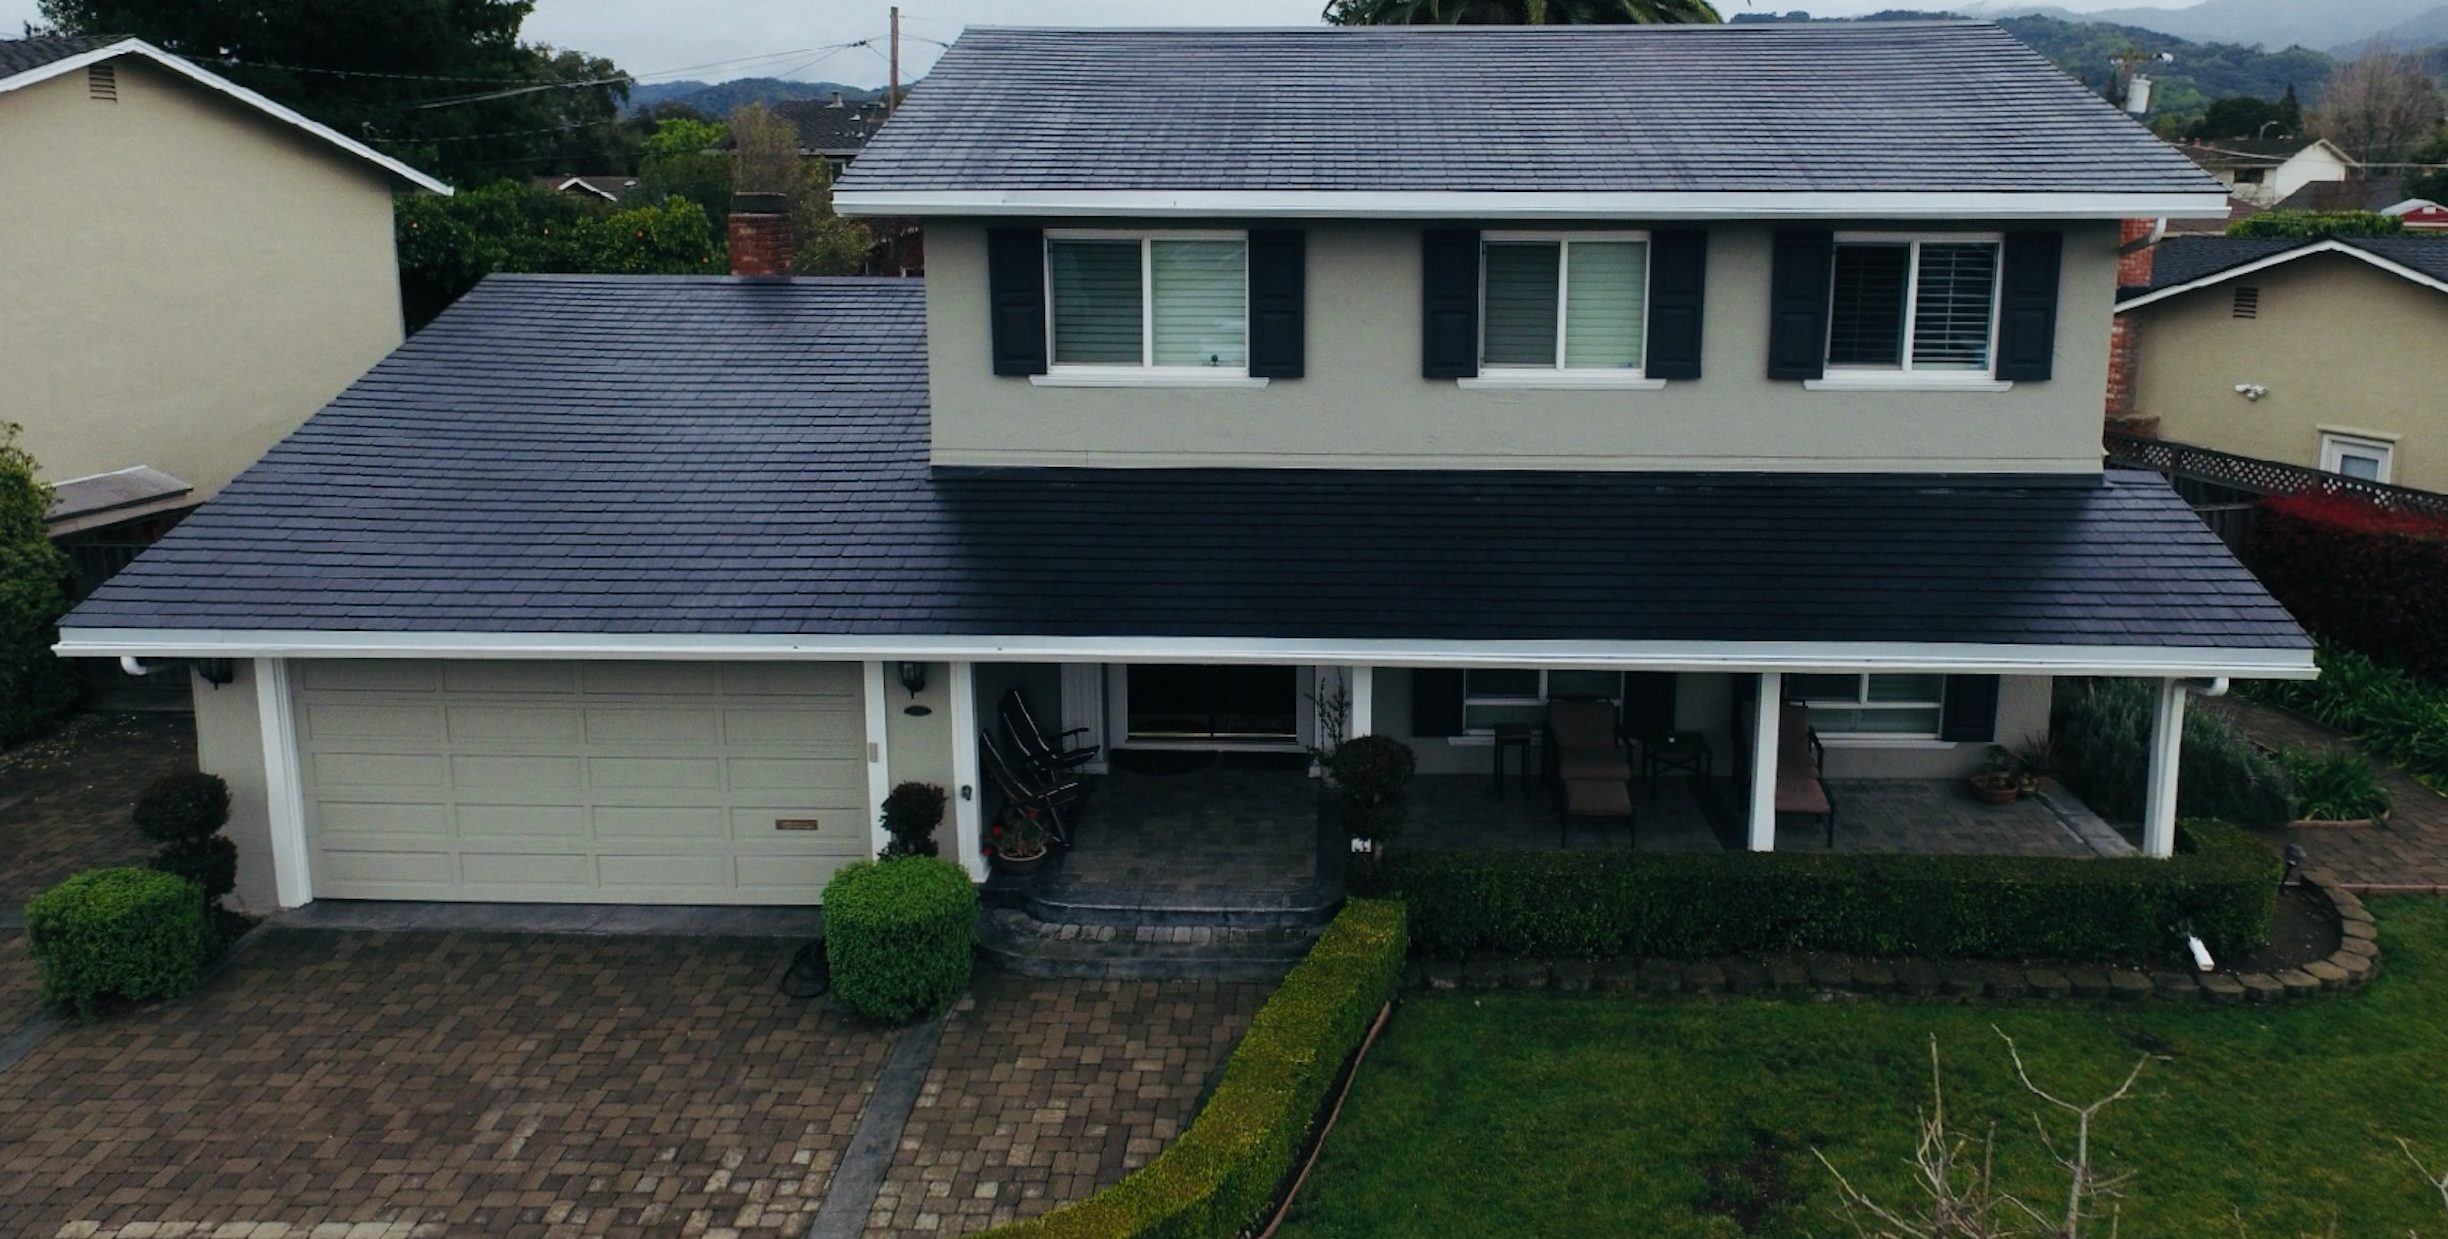 Tesla Solar Roof Shingles >> Tesla Solar Roof Long Term Review Insights From A Homeowner S